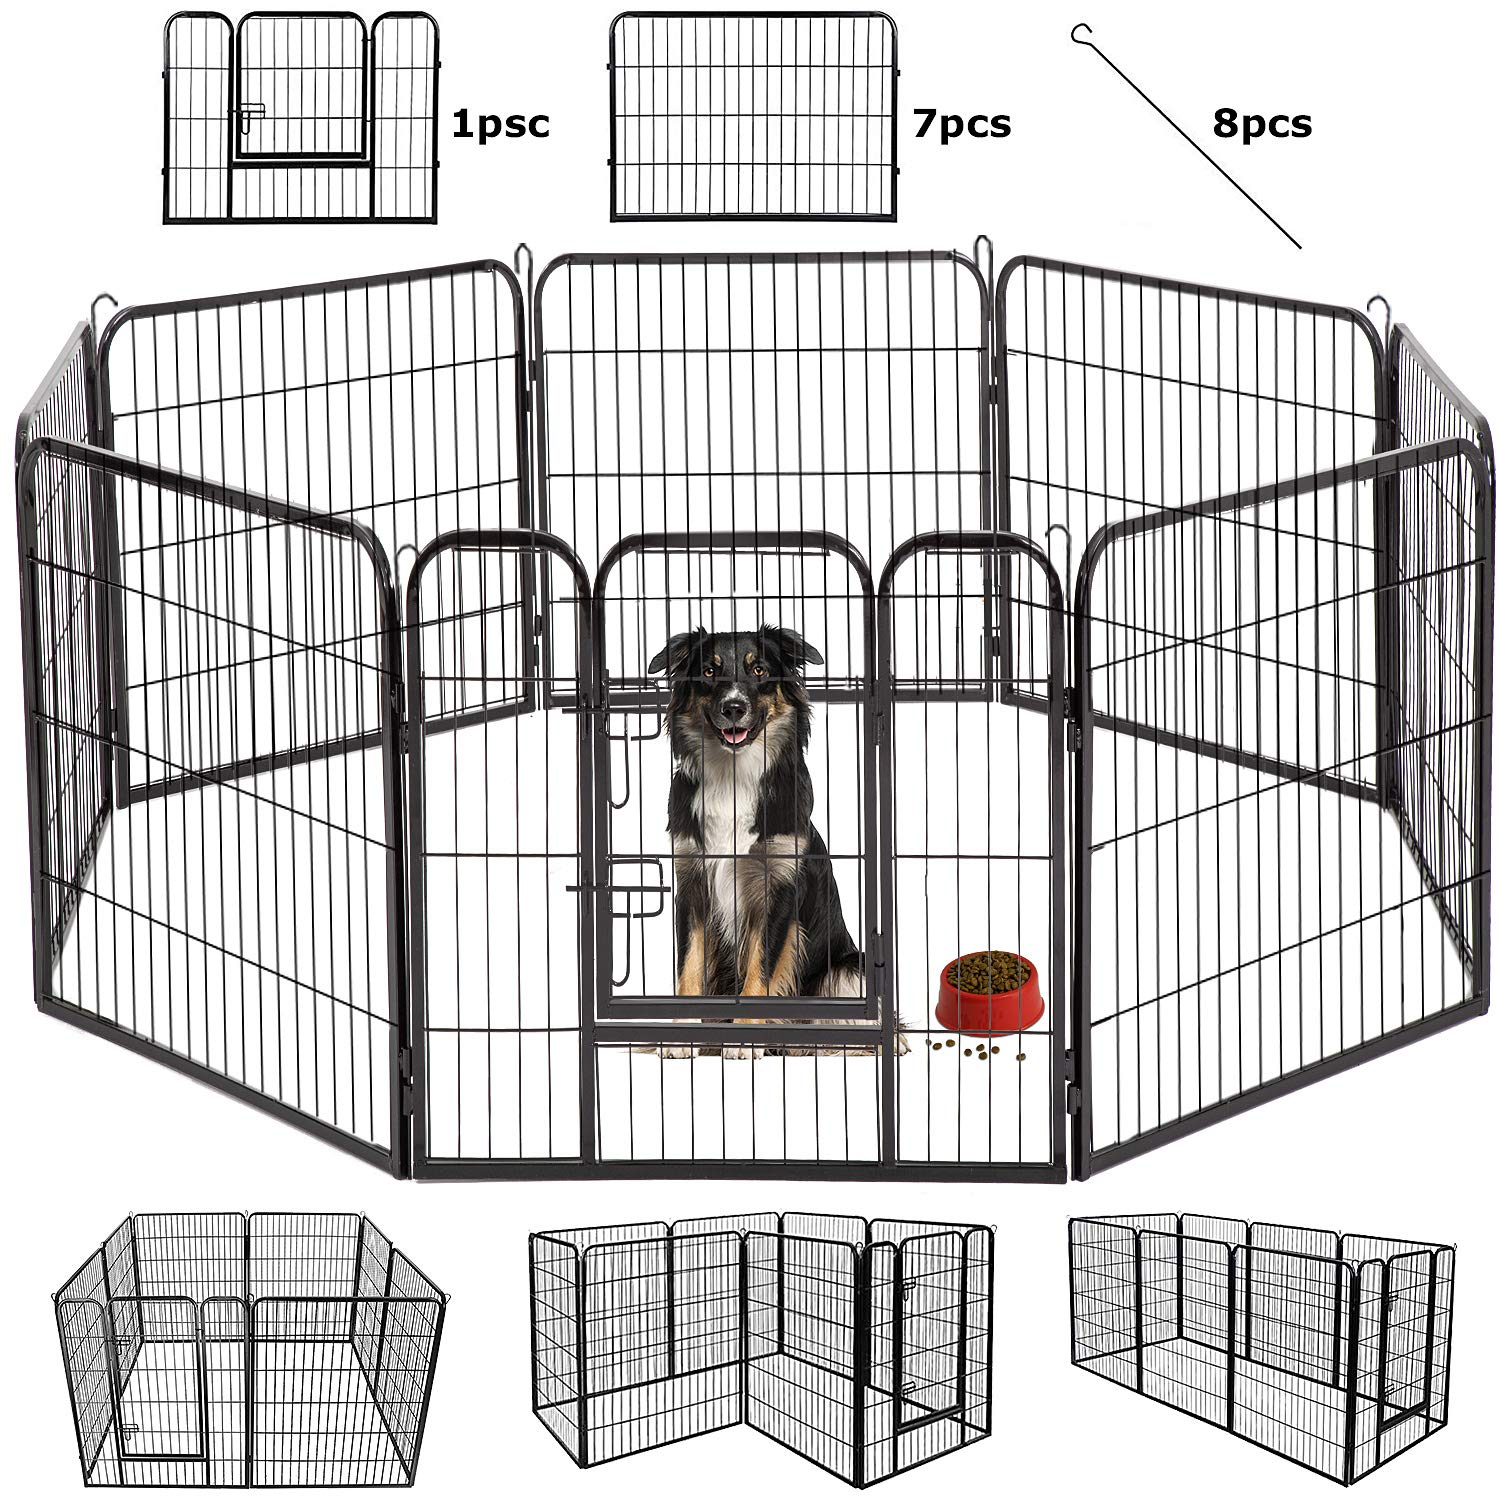 BestPet Dog Pen Extra Large Indoor Outdoor Dog Fence Playpen Heavy Duty 16 8 Panels 24 32 40 Inches Exercise Pen Dog Crate Cage Kennel